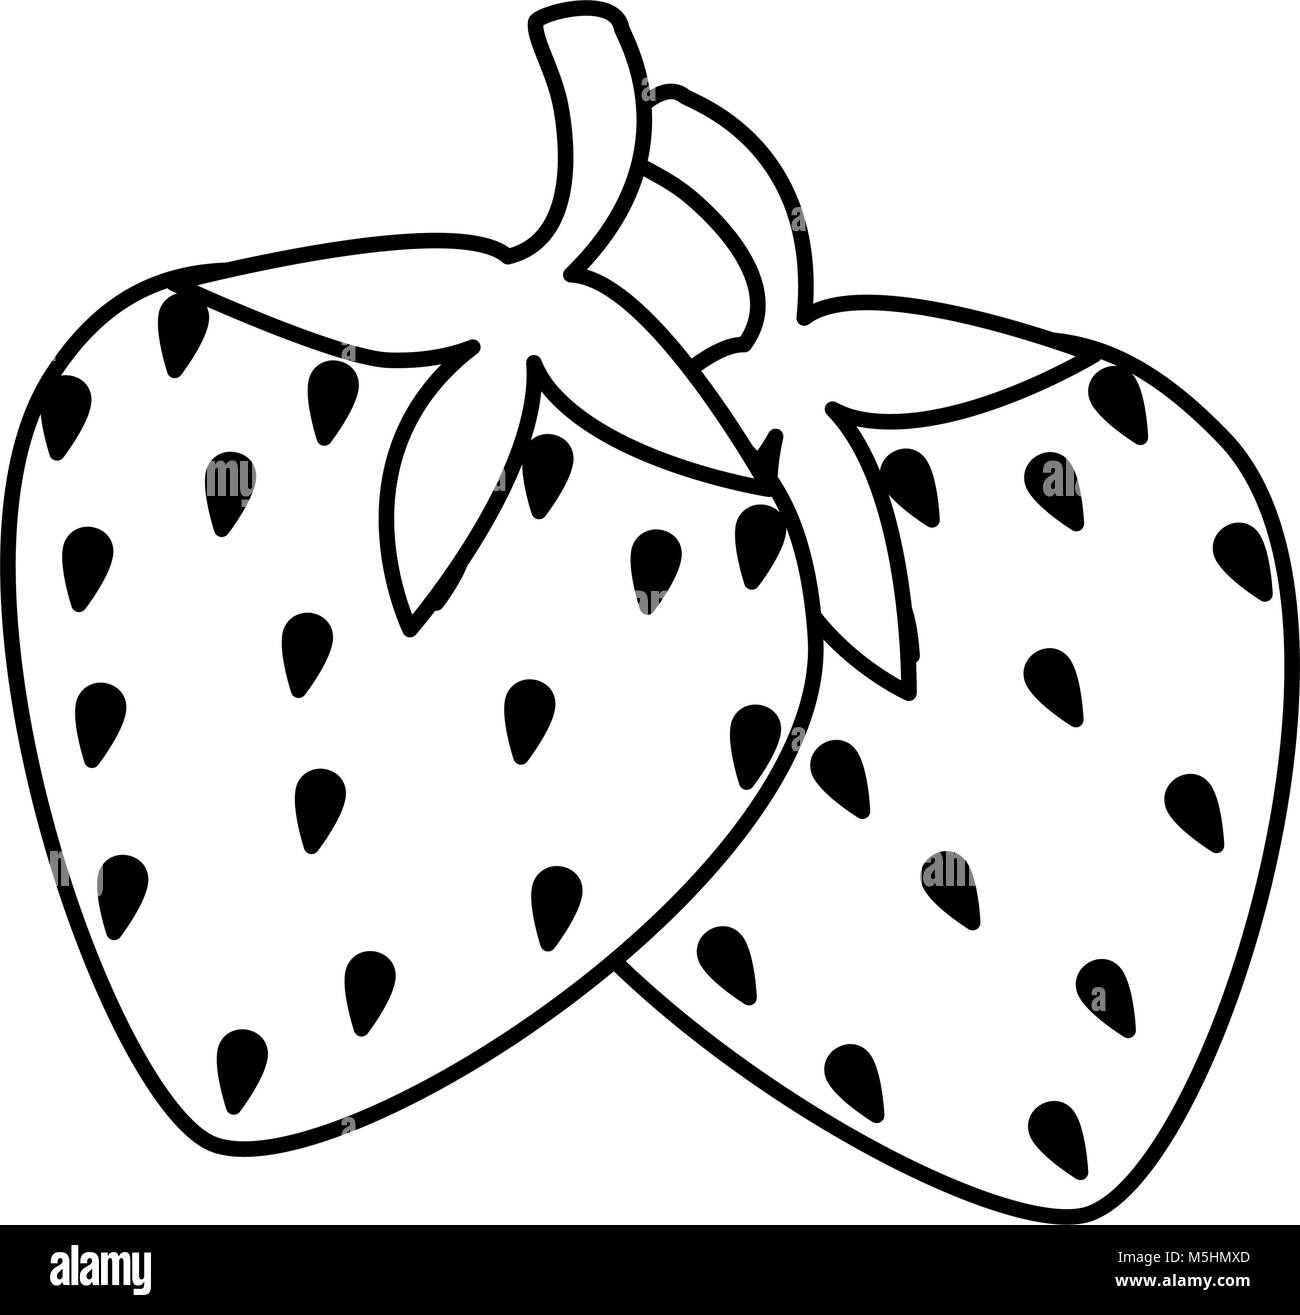 Strawberry Black and White Stock Photos  for Clipart Strawberry Black And White  66pct